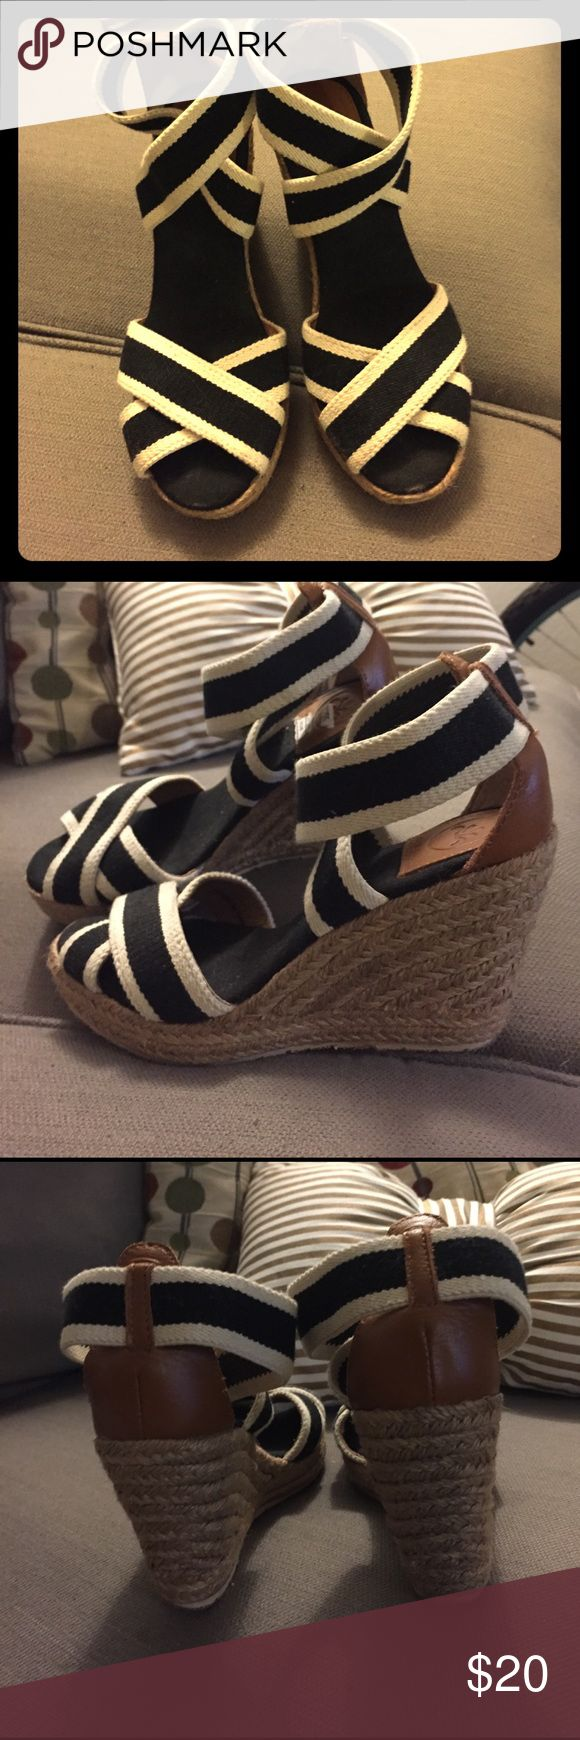 Black and white espadrilles Really cute wedge sandals. Stretchy straps and barely worn. Love the style just realized I never wear wedges. Great condition Shoes Espadrilles